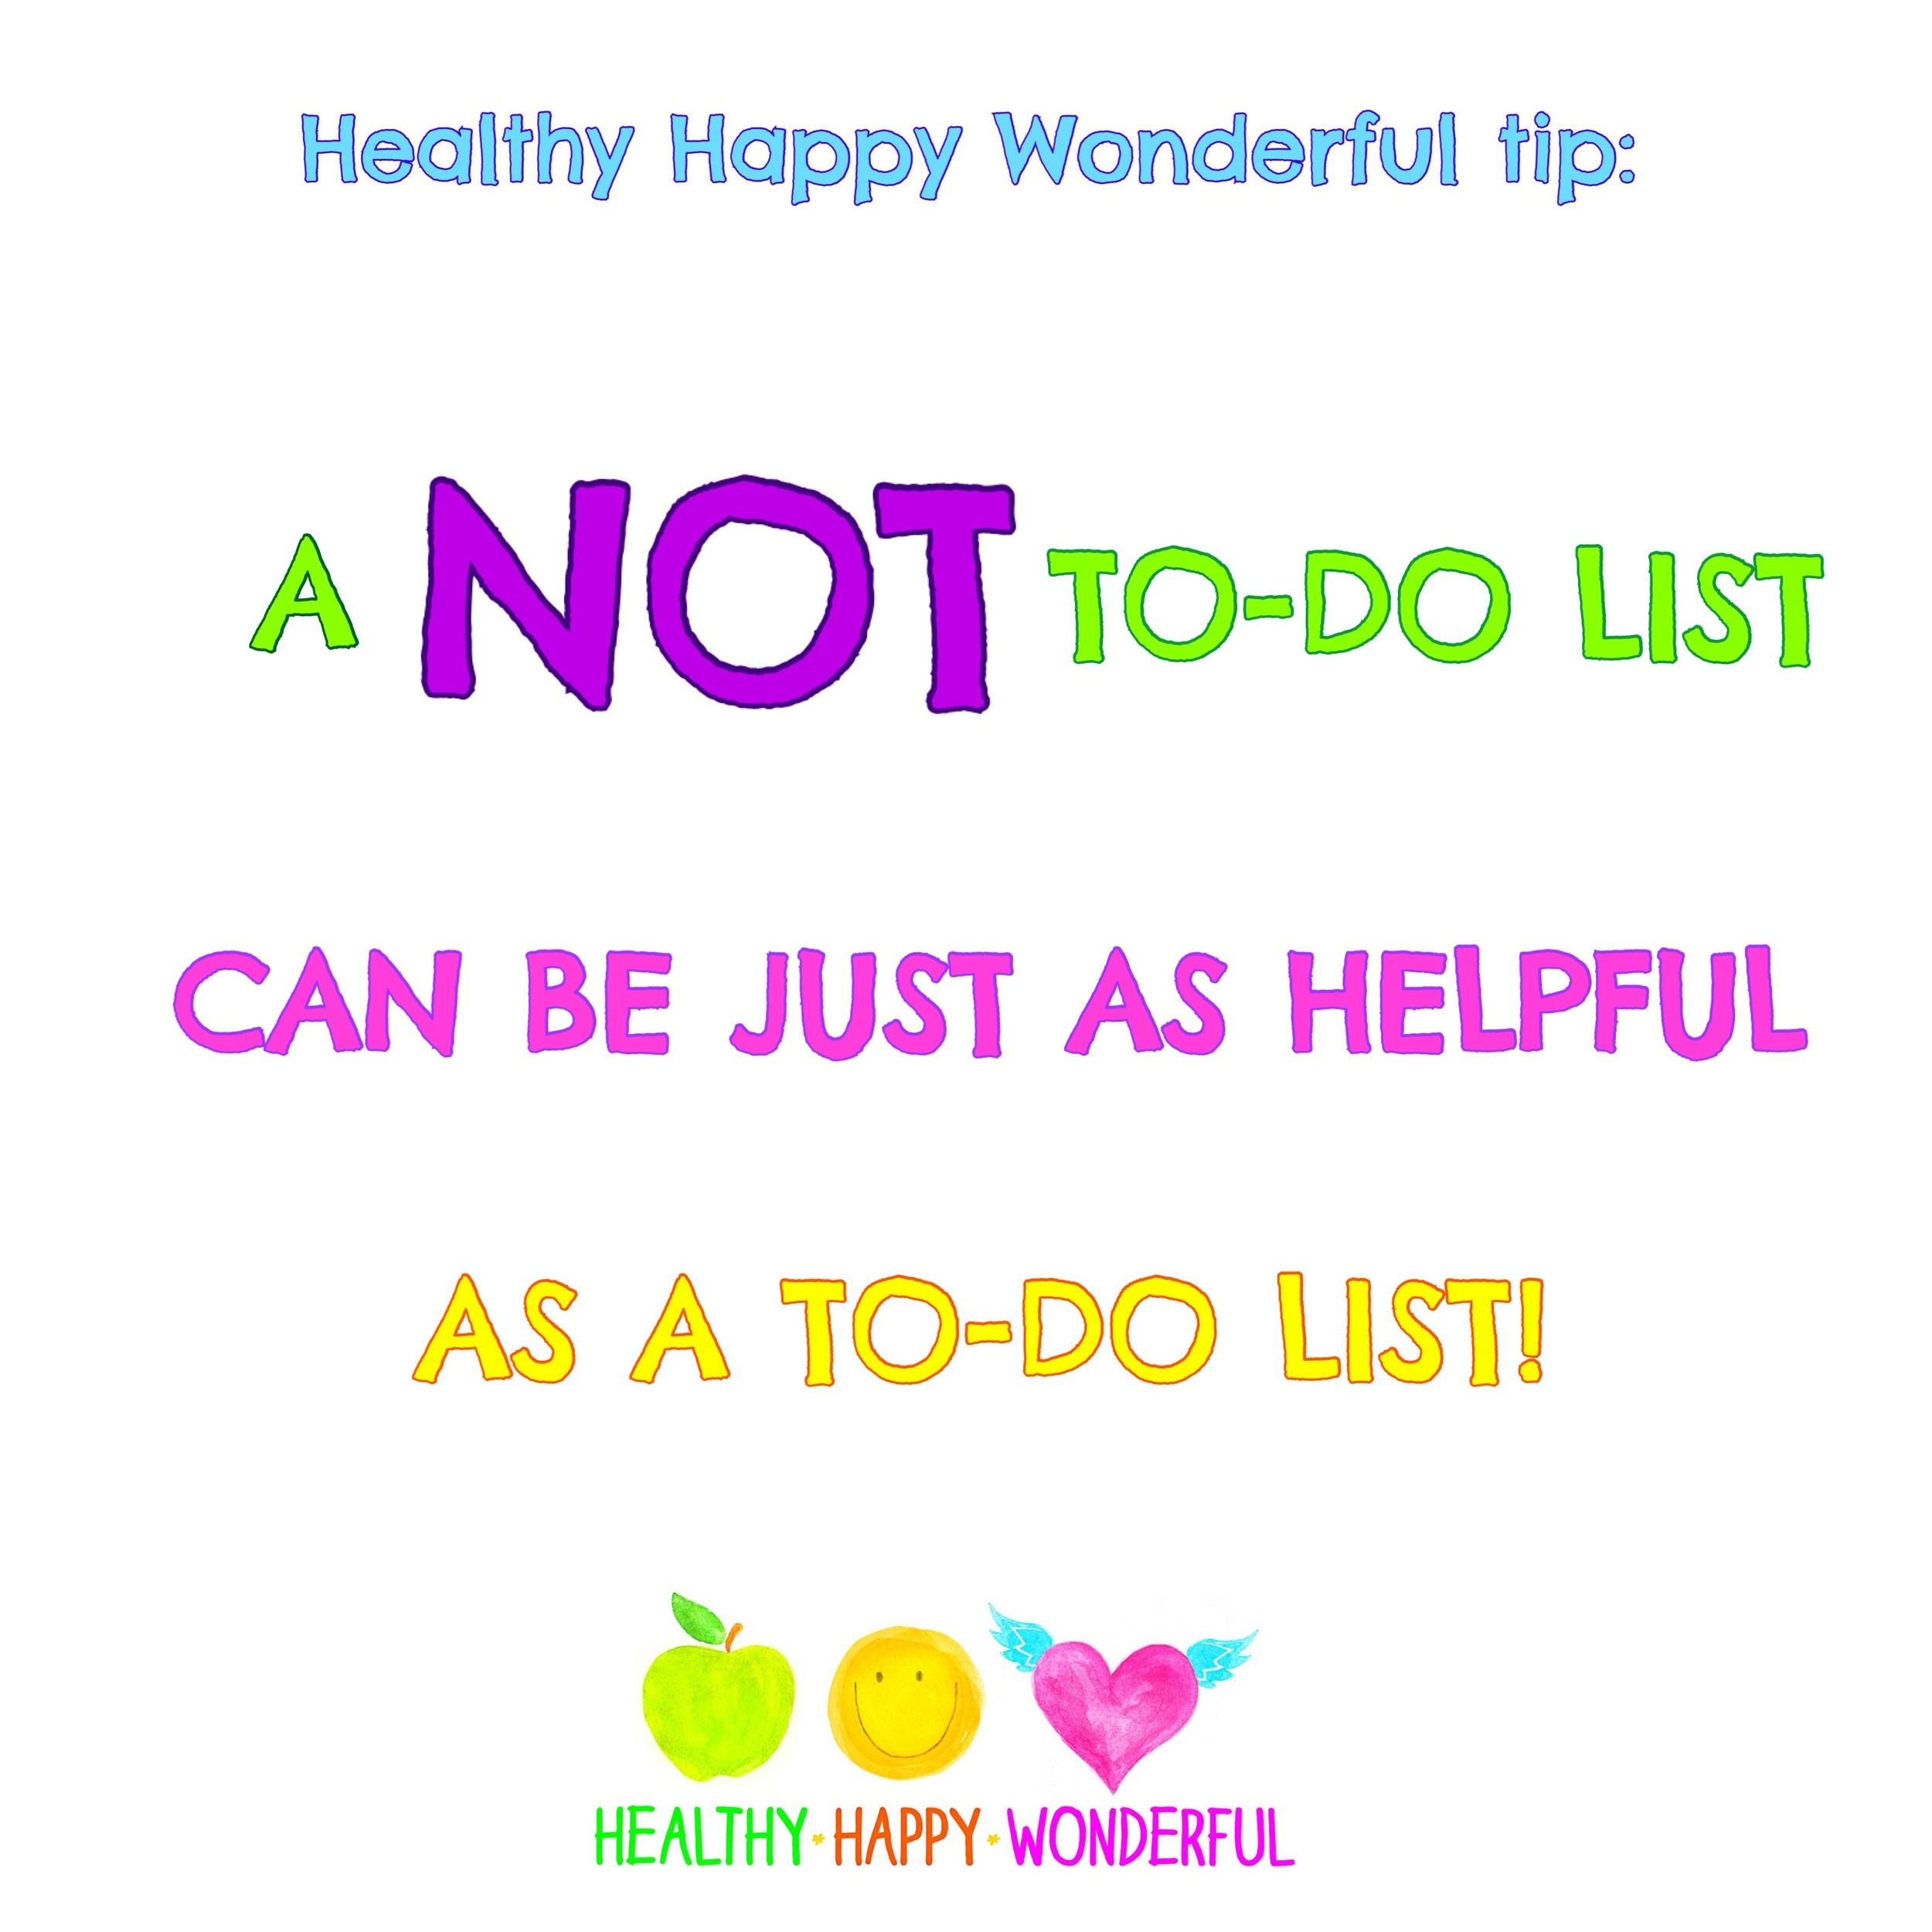 Do you have a not-to-do list?